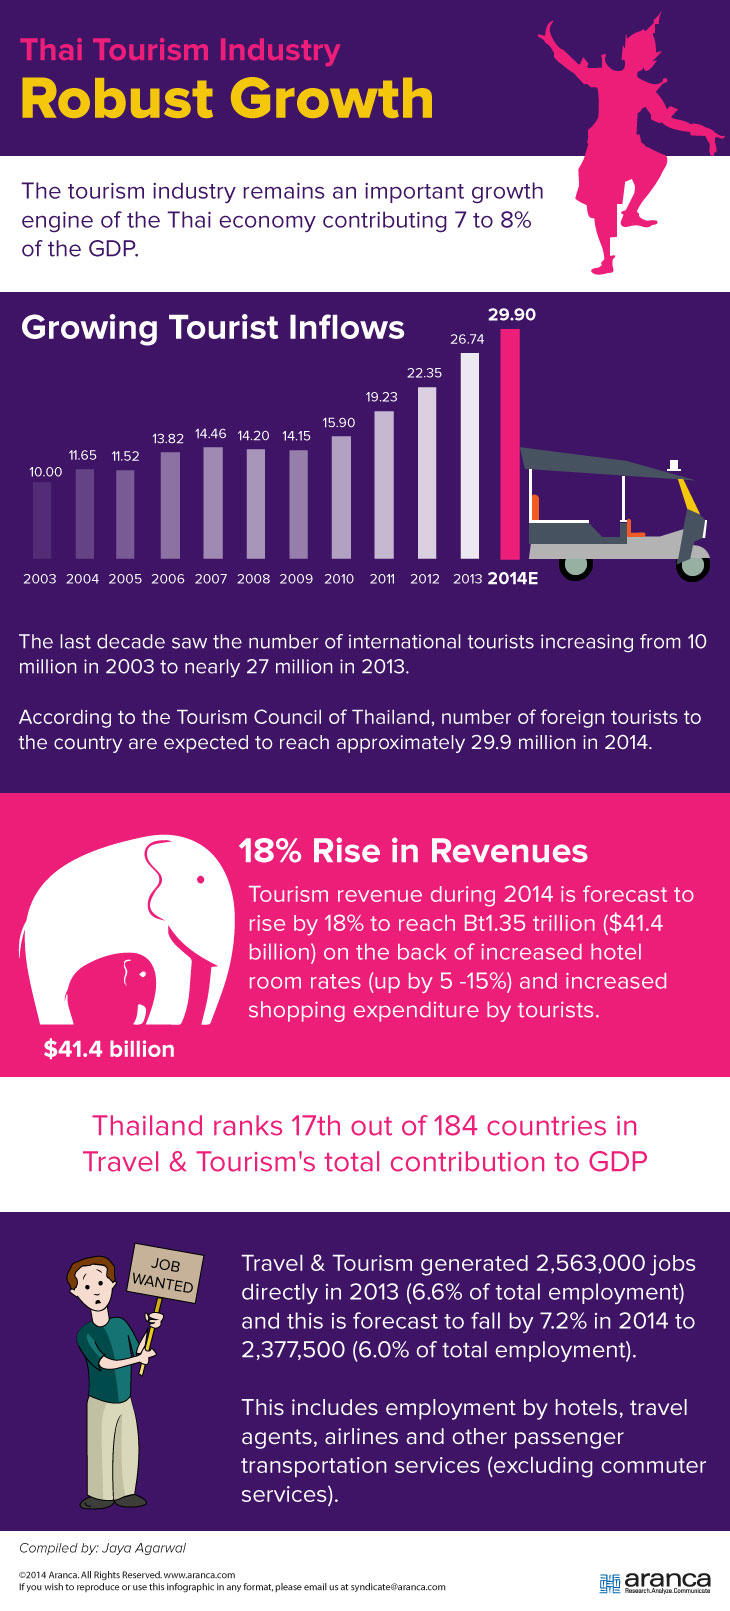 Thai Tourism Industry